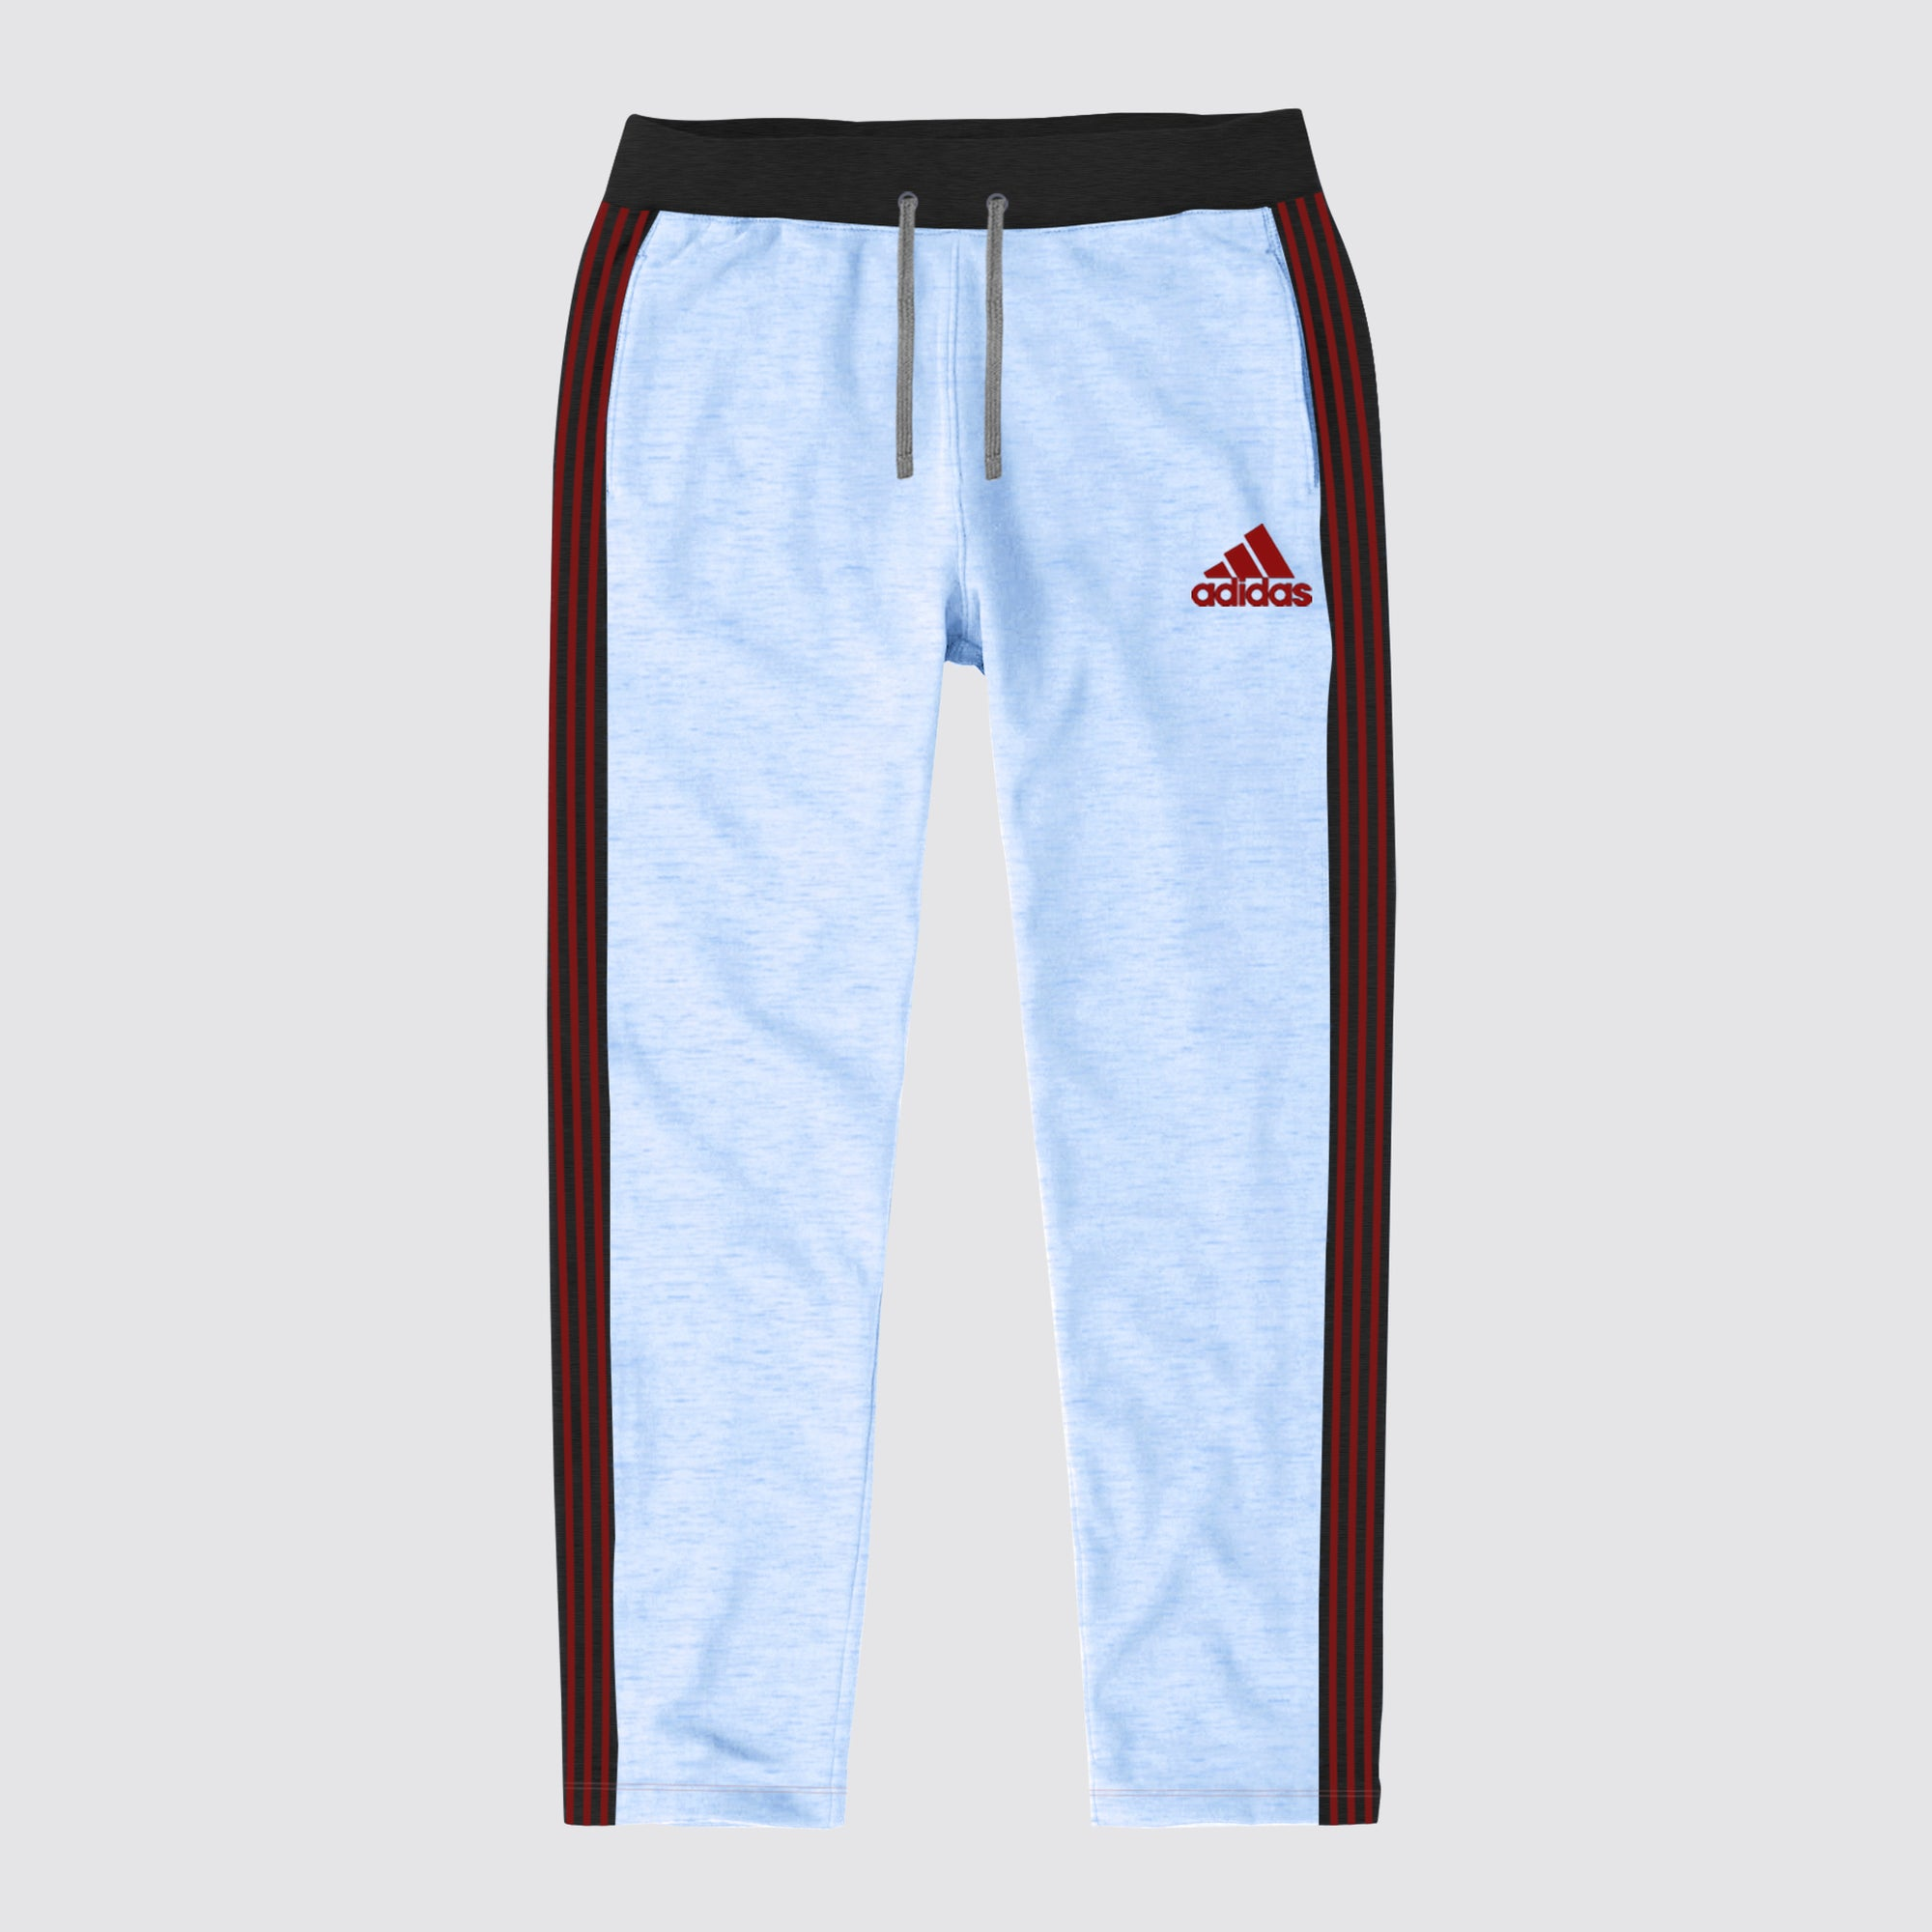 Adidas Single Jersey Regular Fit Trouser For Men-Sky Melange with Charcoal & Red Stripe-BE8659